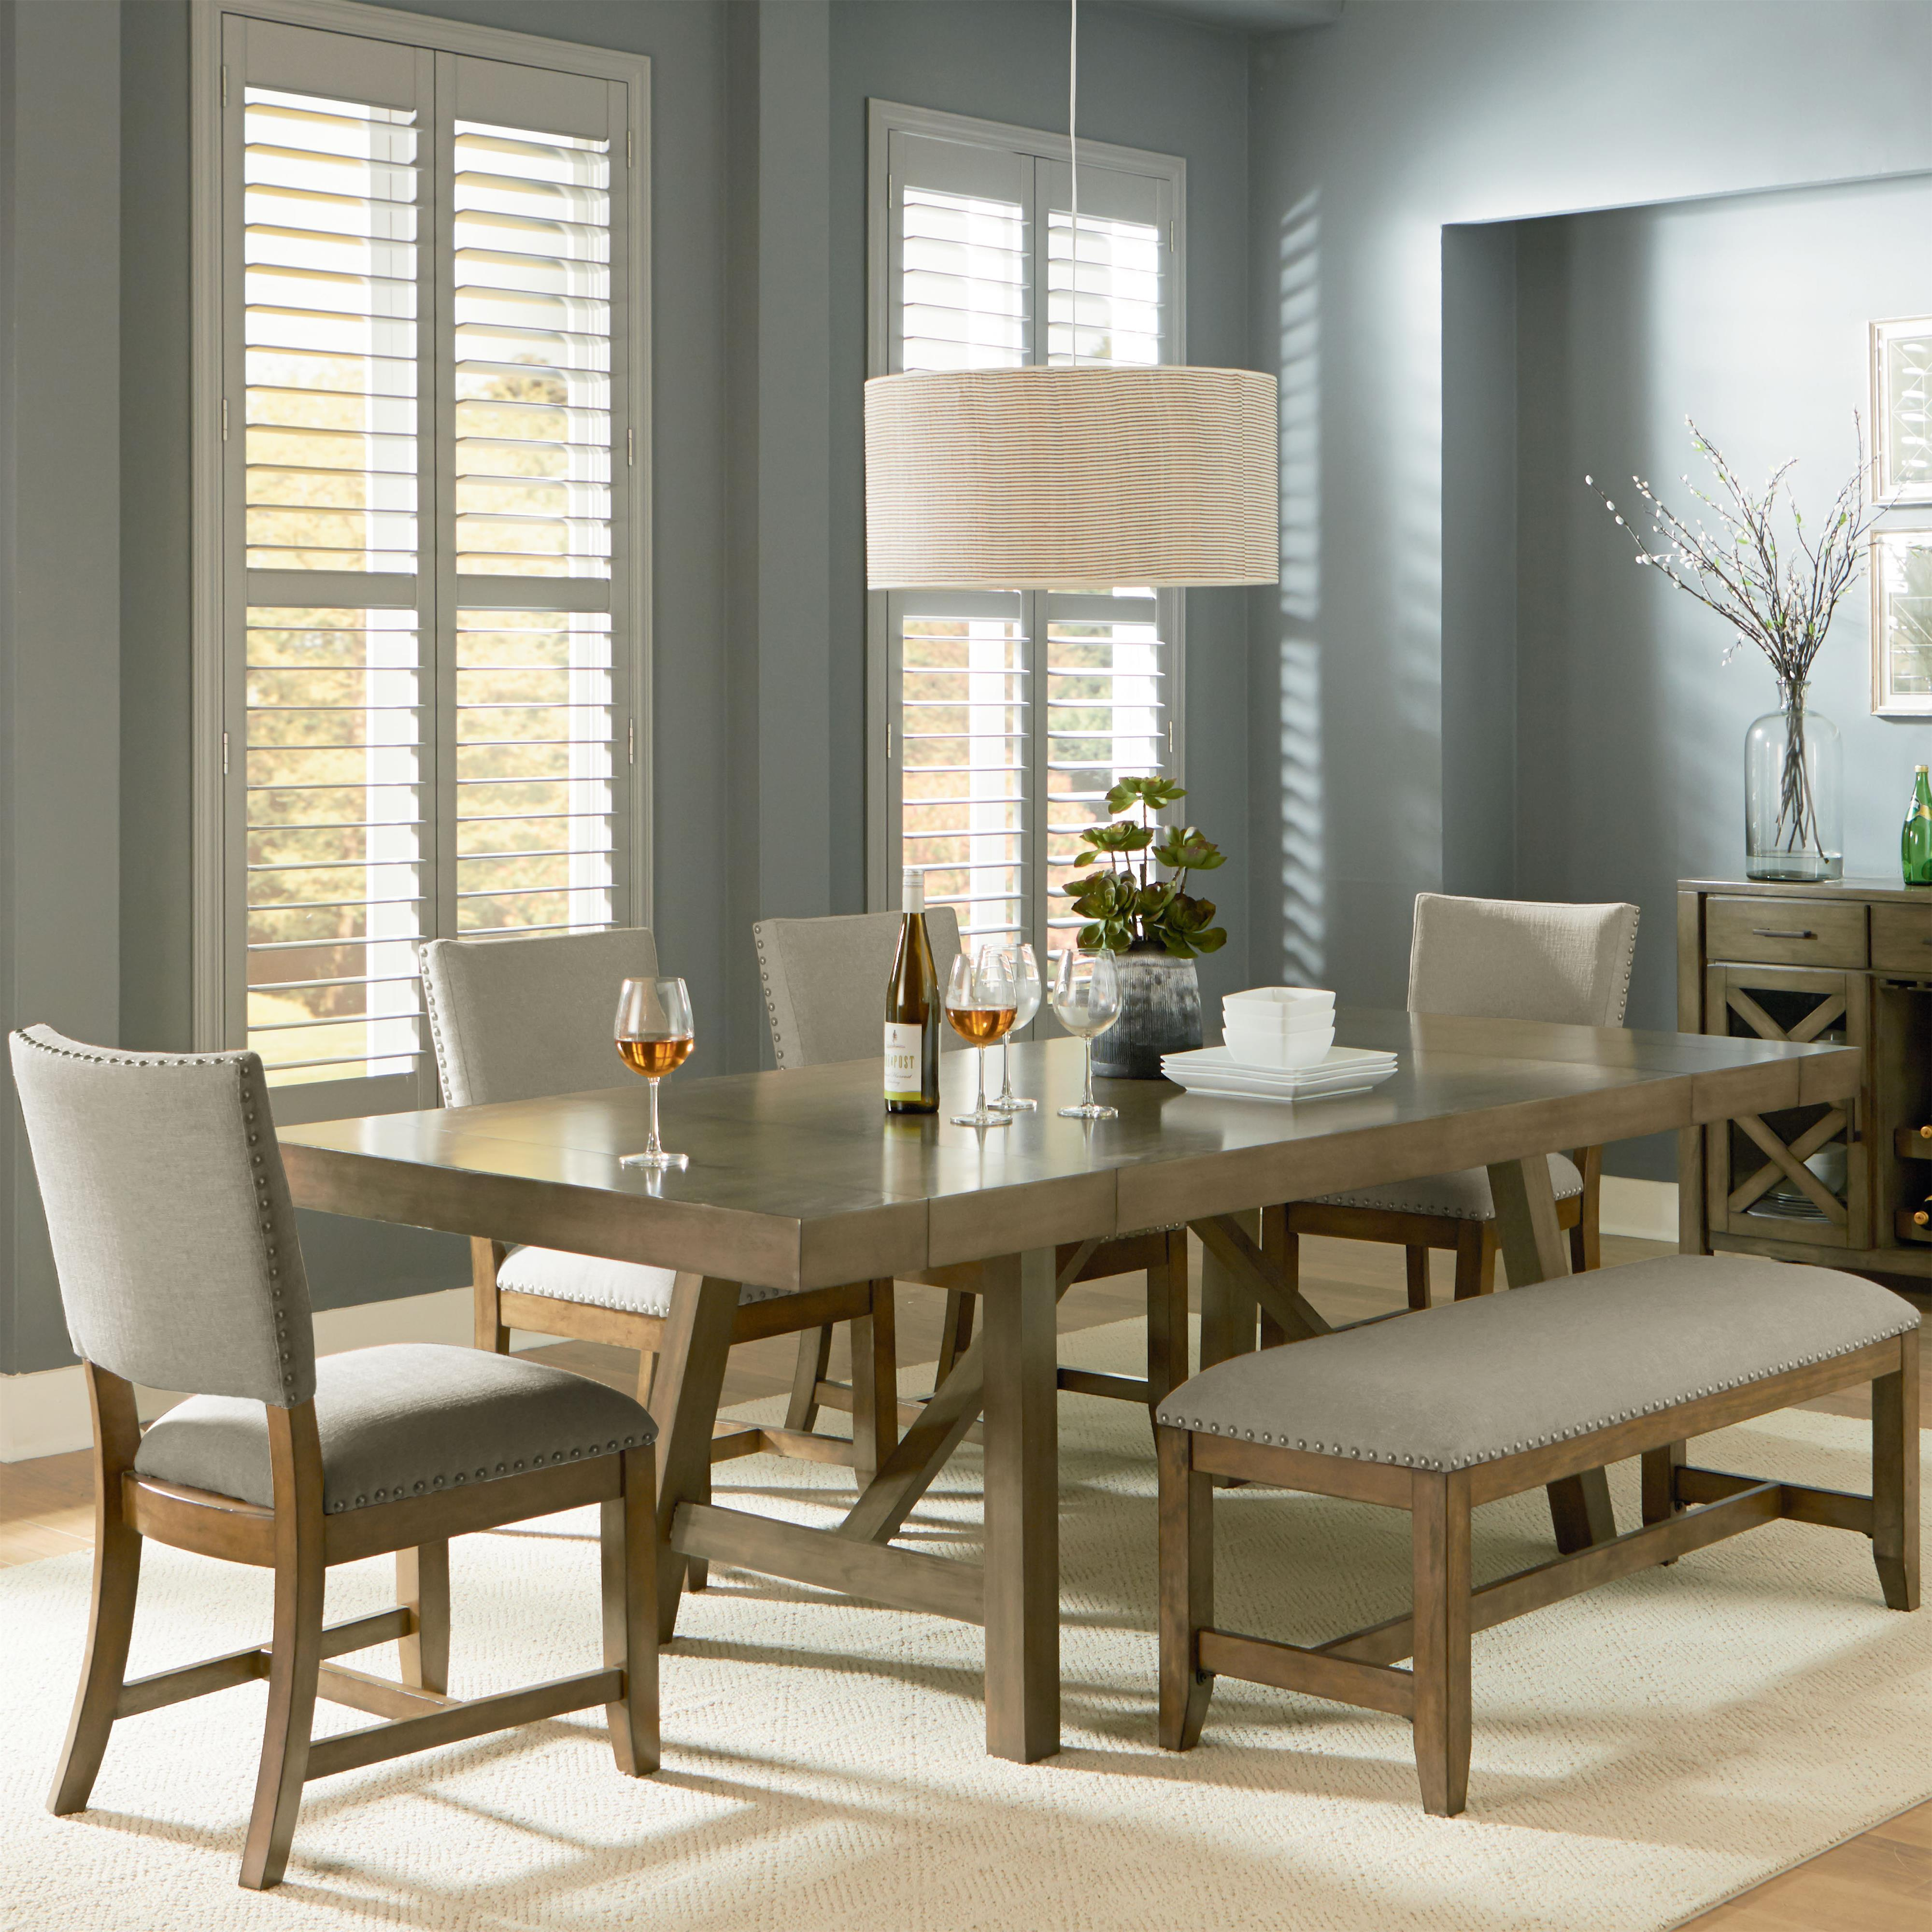 Standard Furniture Omaha Grey Trestle Table Dining Set - Item Number: 16681+88+4x87